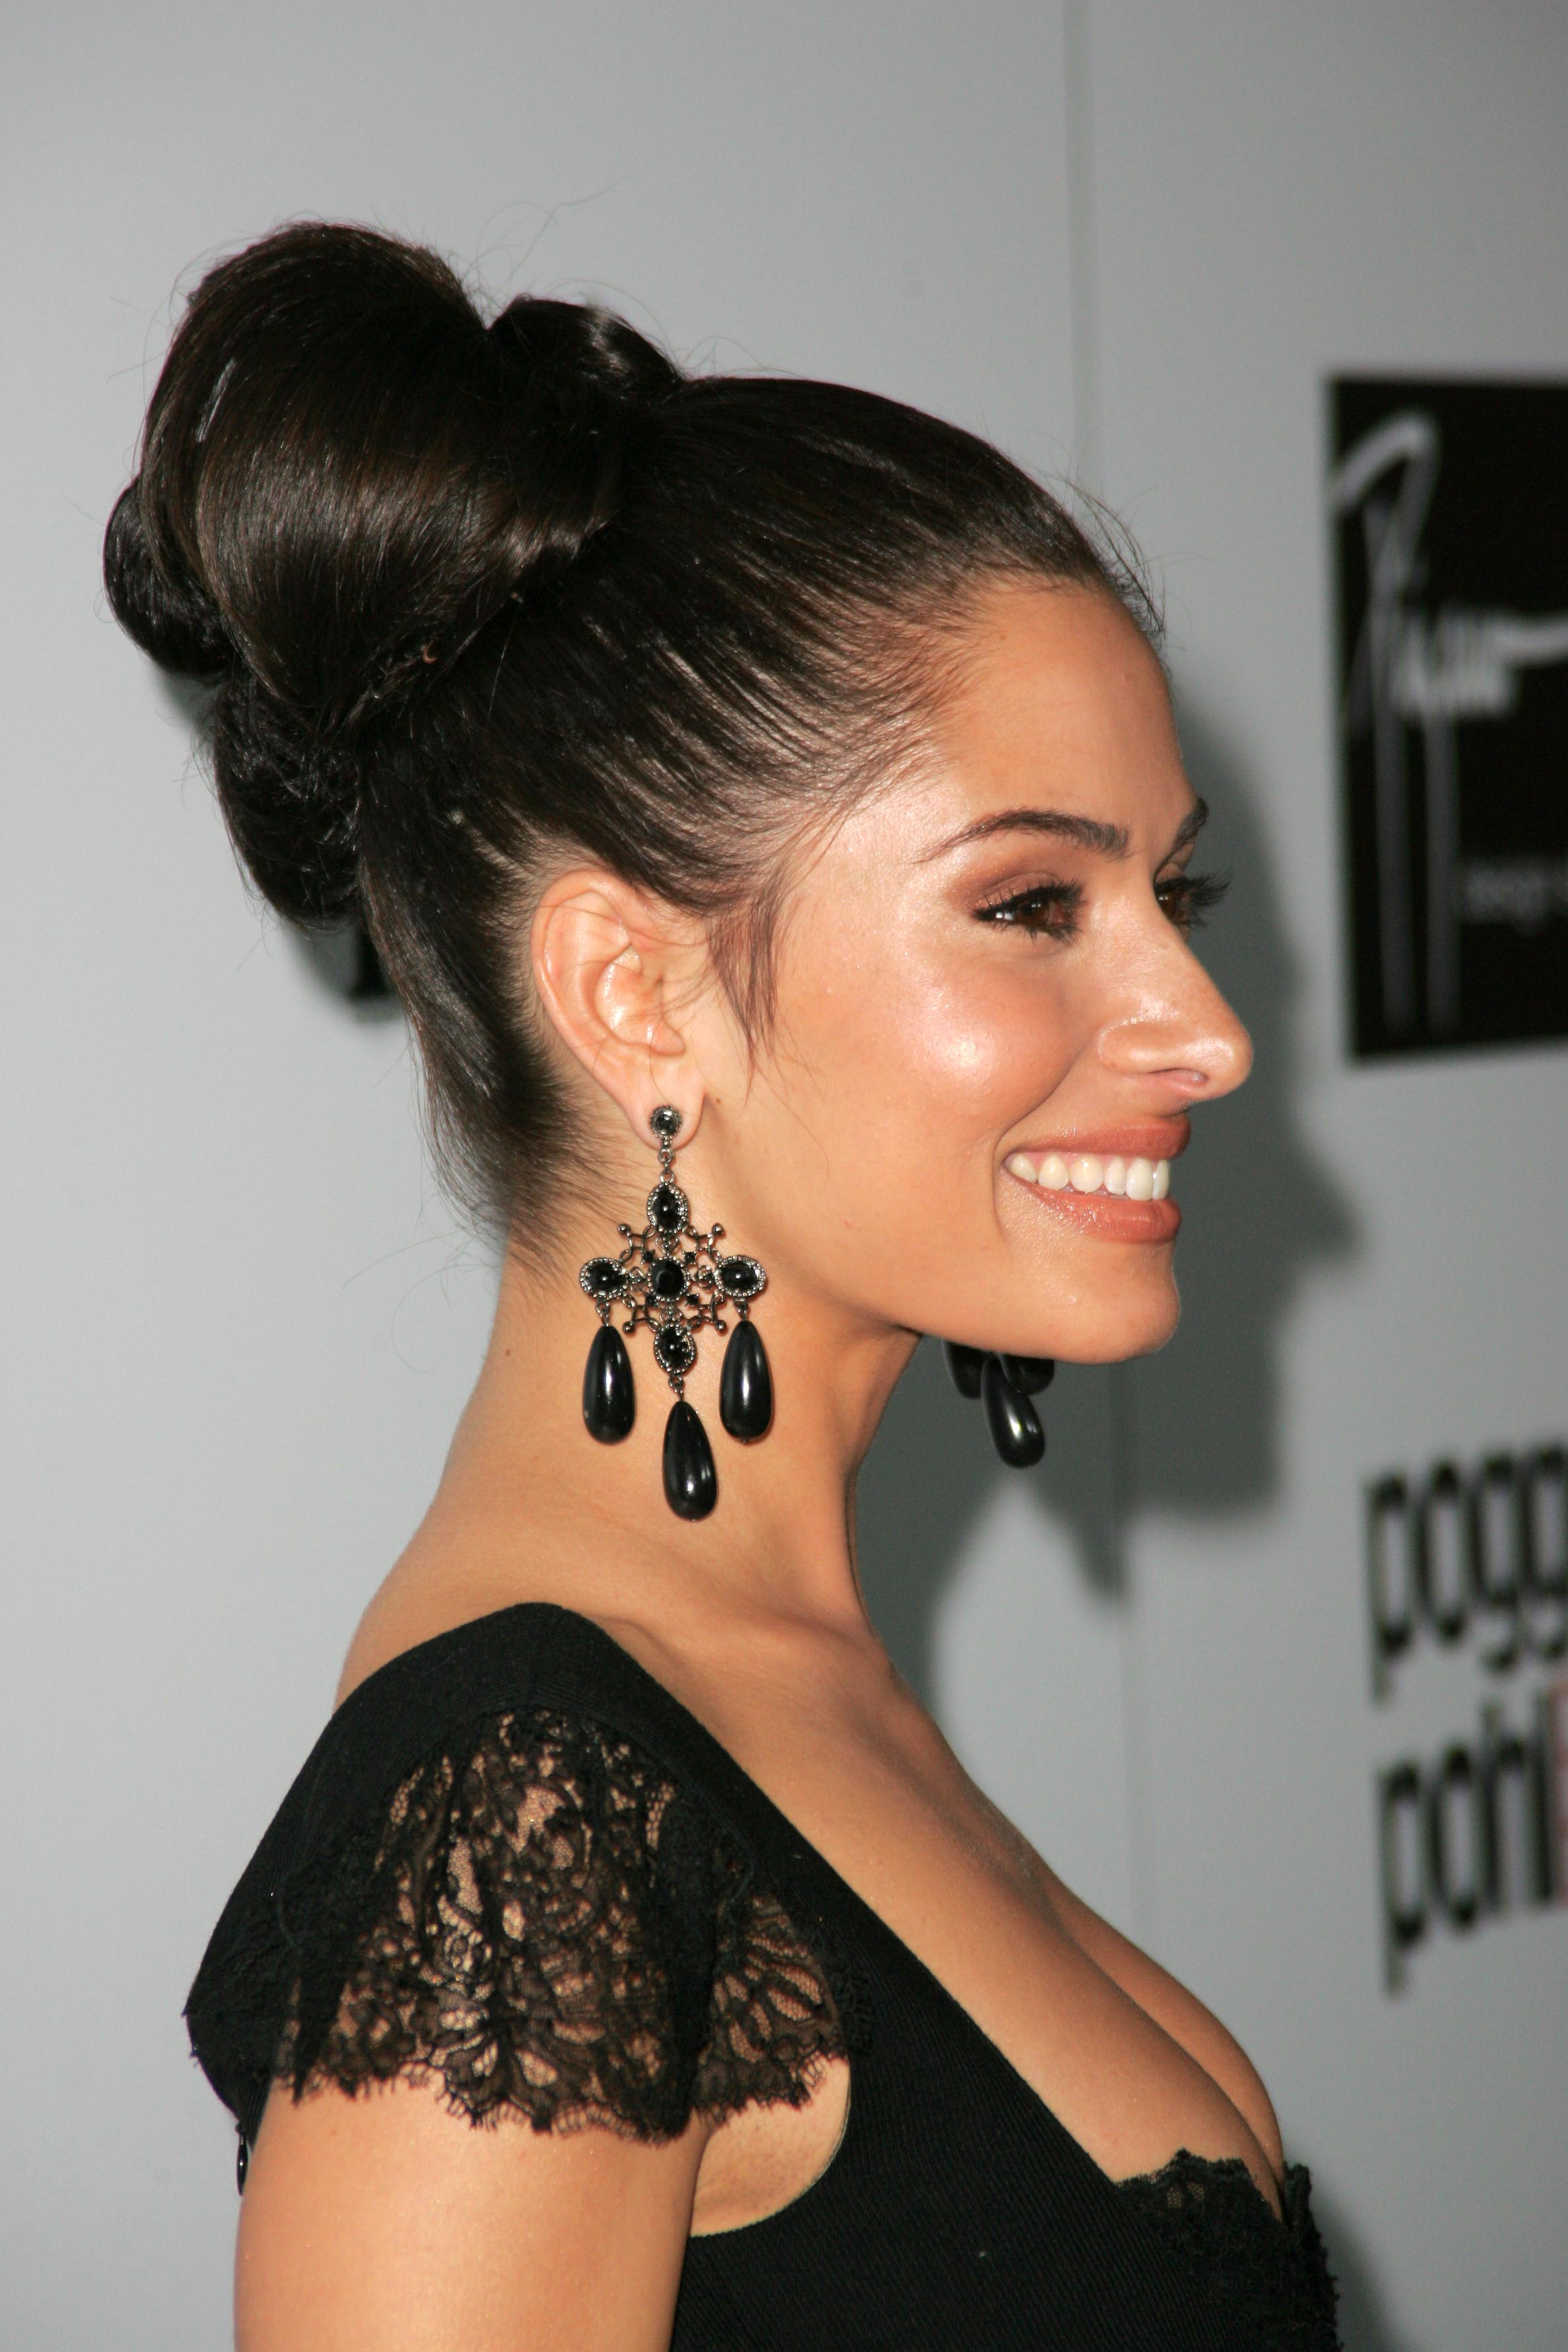 http://static.cinemagia.ro/img/db/actor/03/94/80/sarah-shahi-389861l.jpg